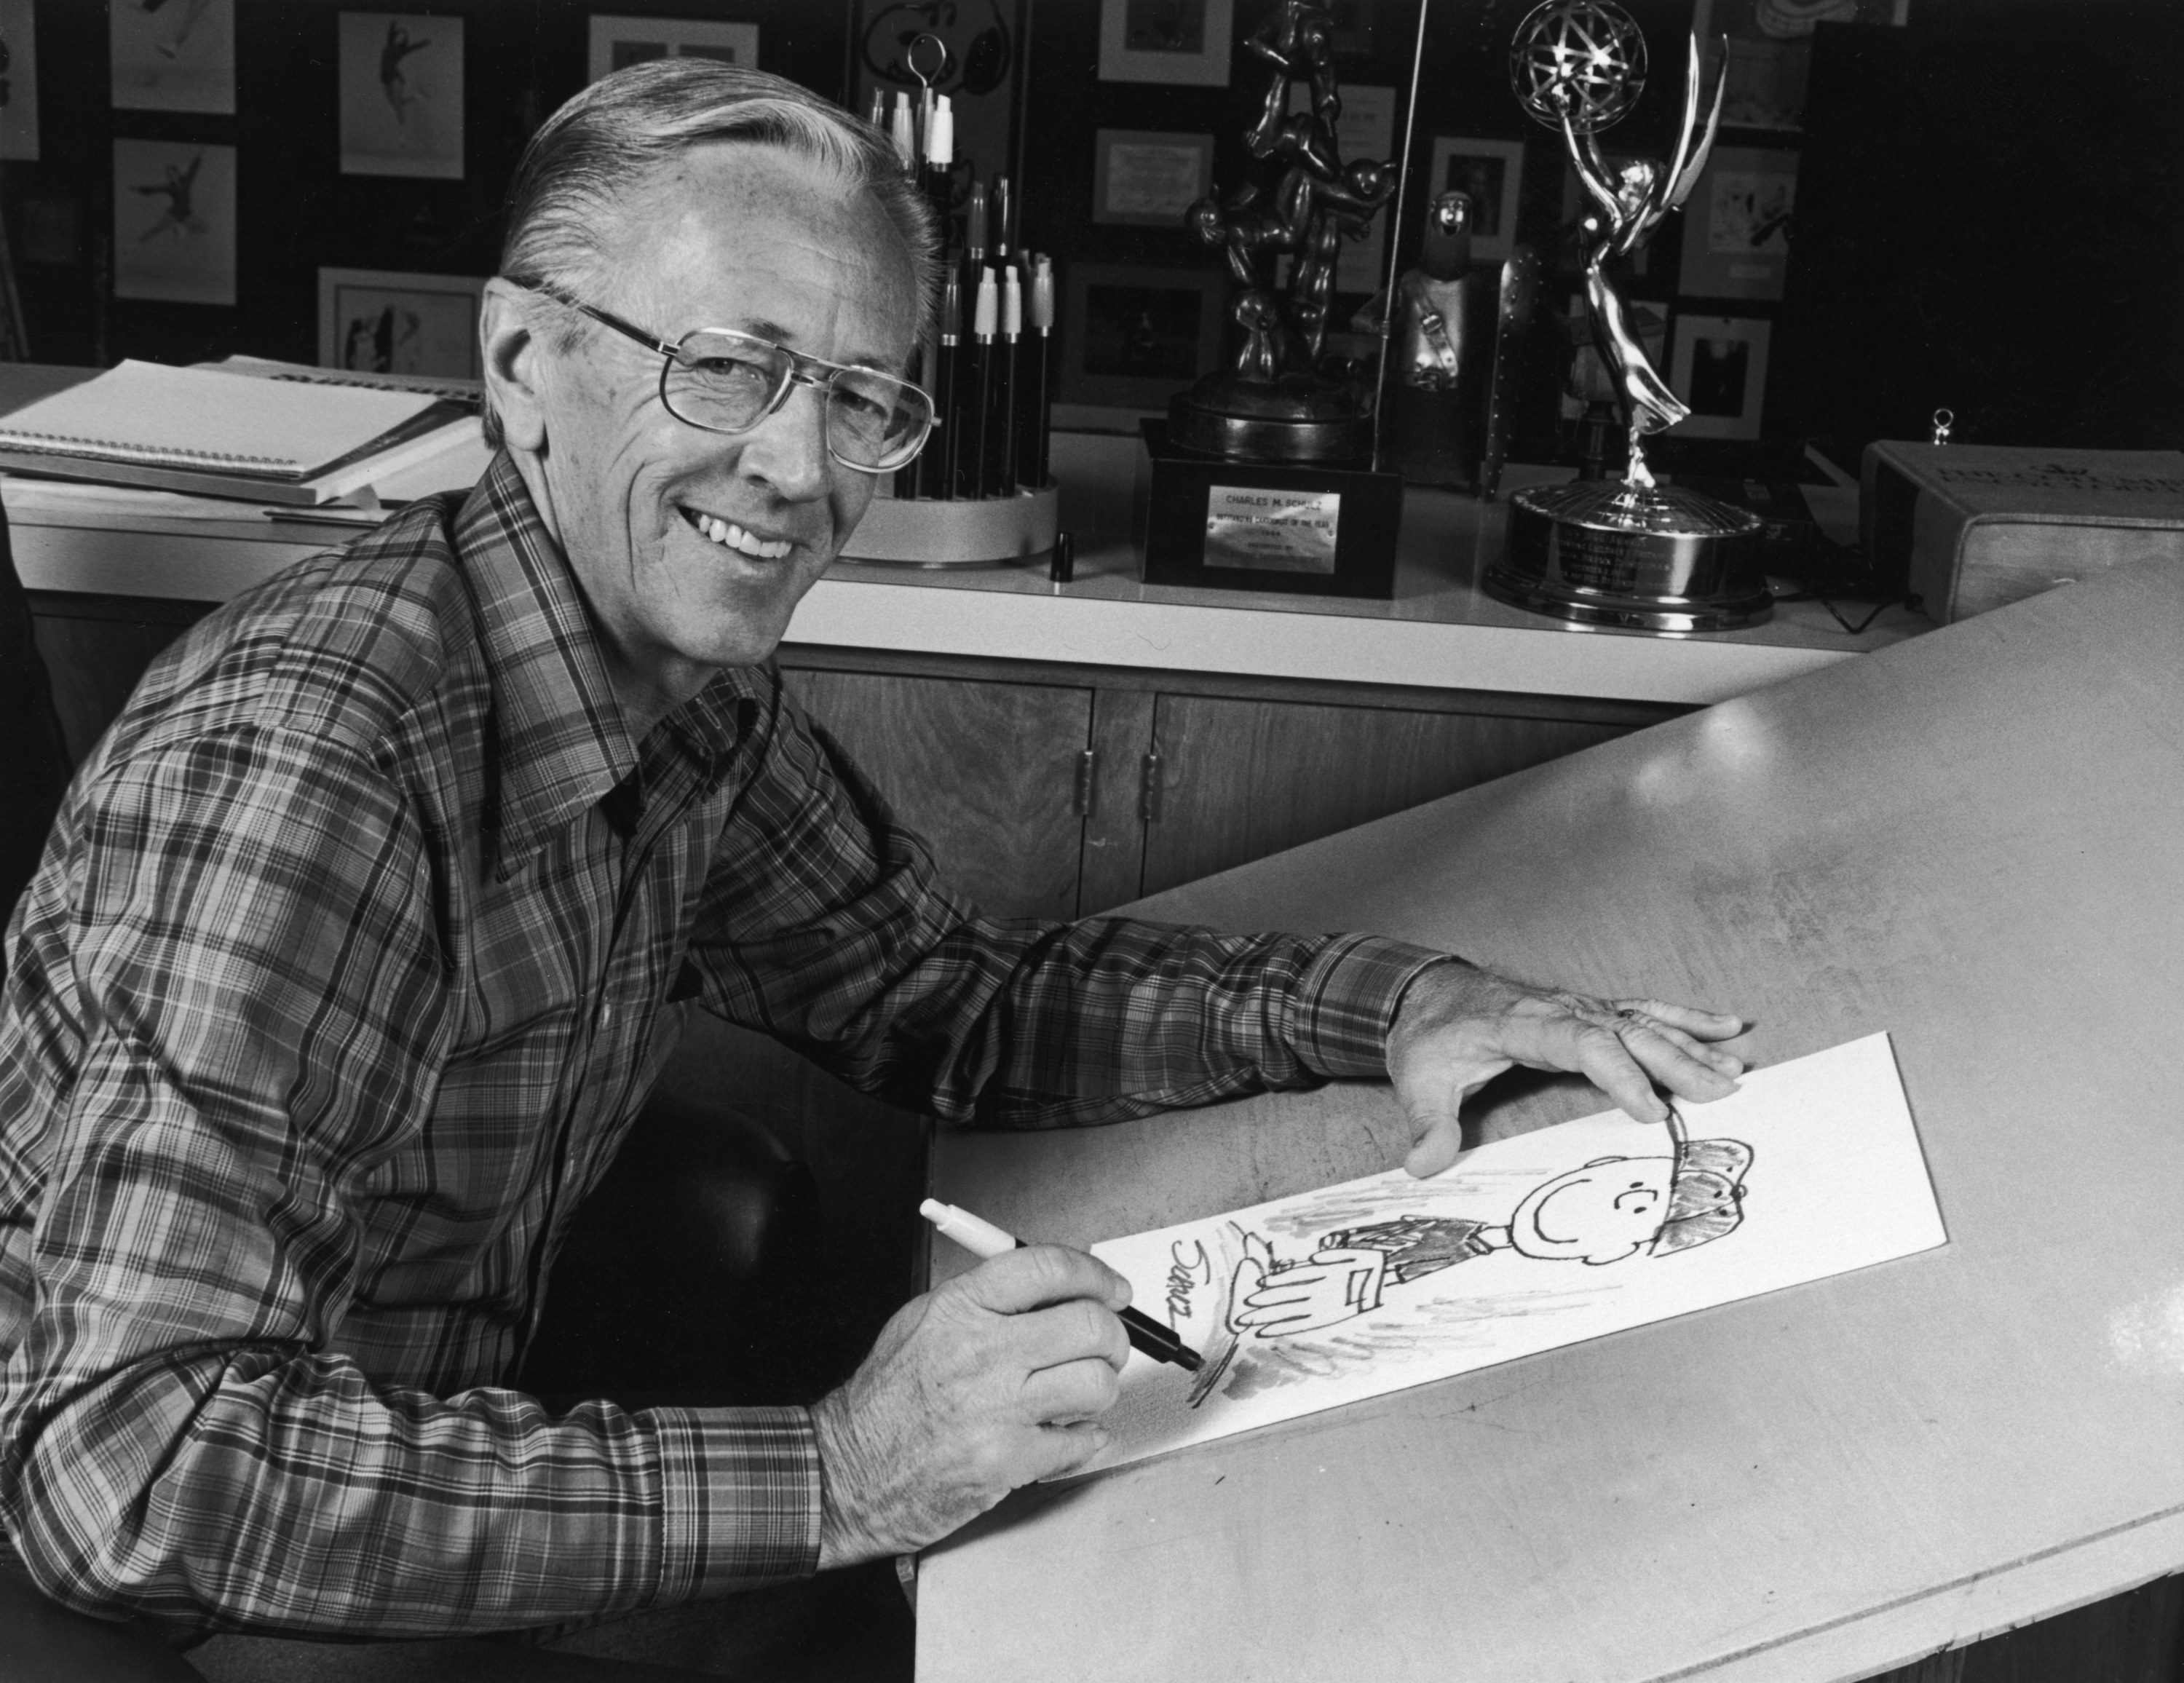 Black-and-white photo of Charles Schulz at a table drawing a sketch of Peanuts character Charlie Brown